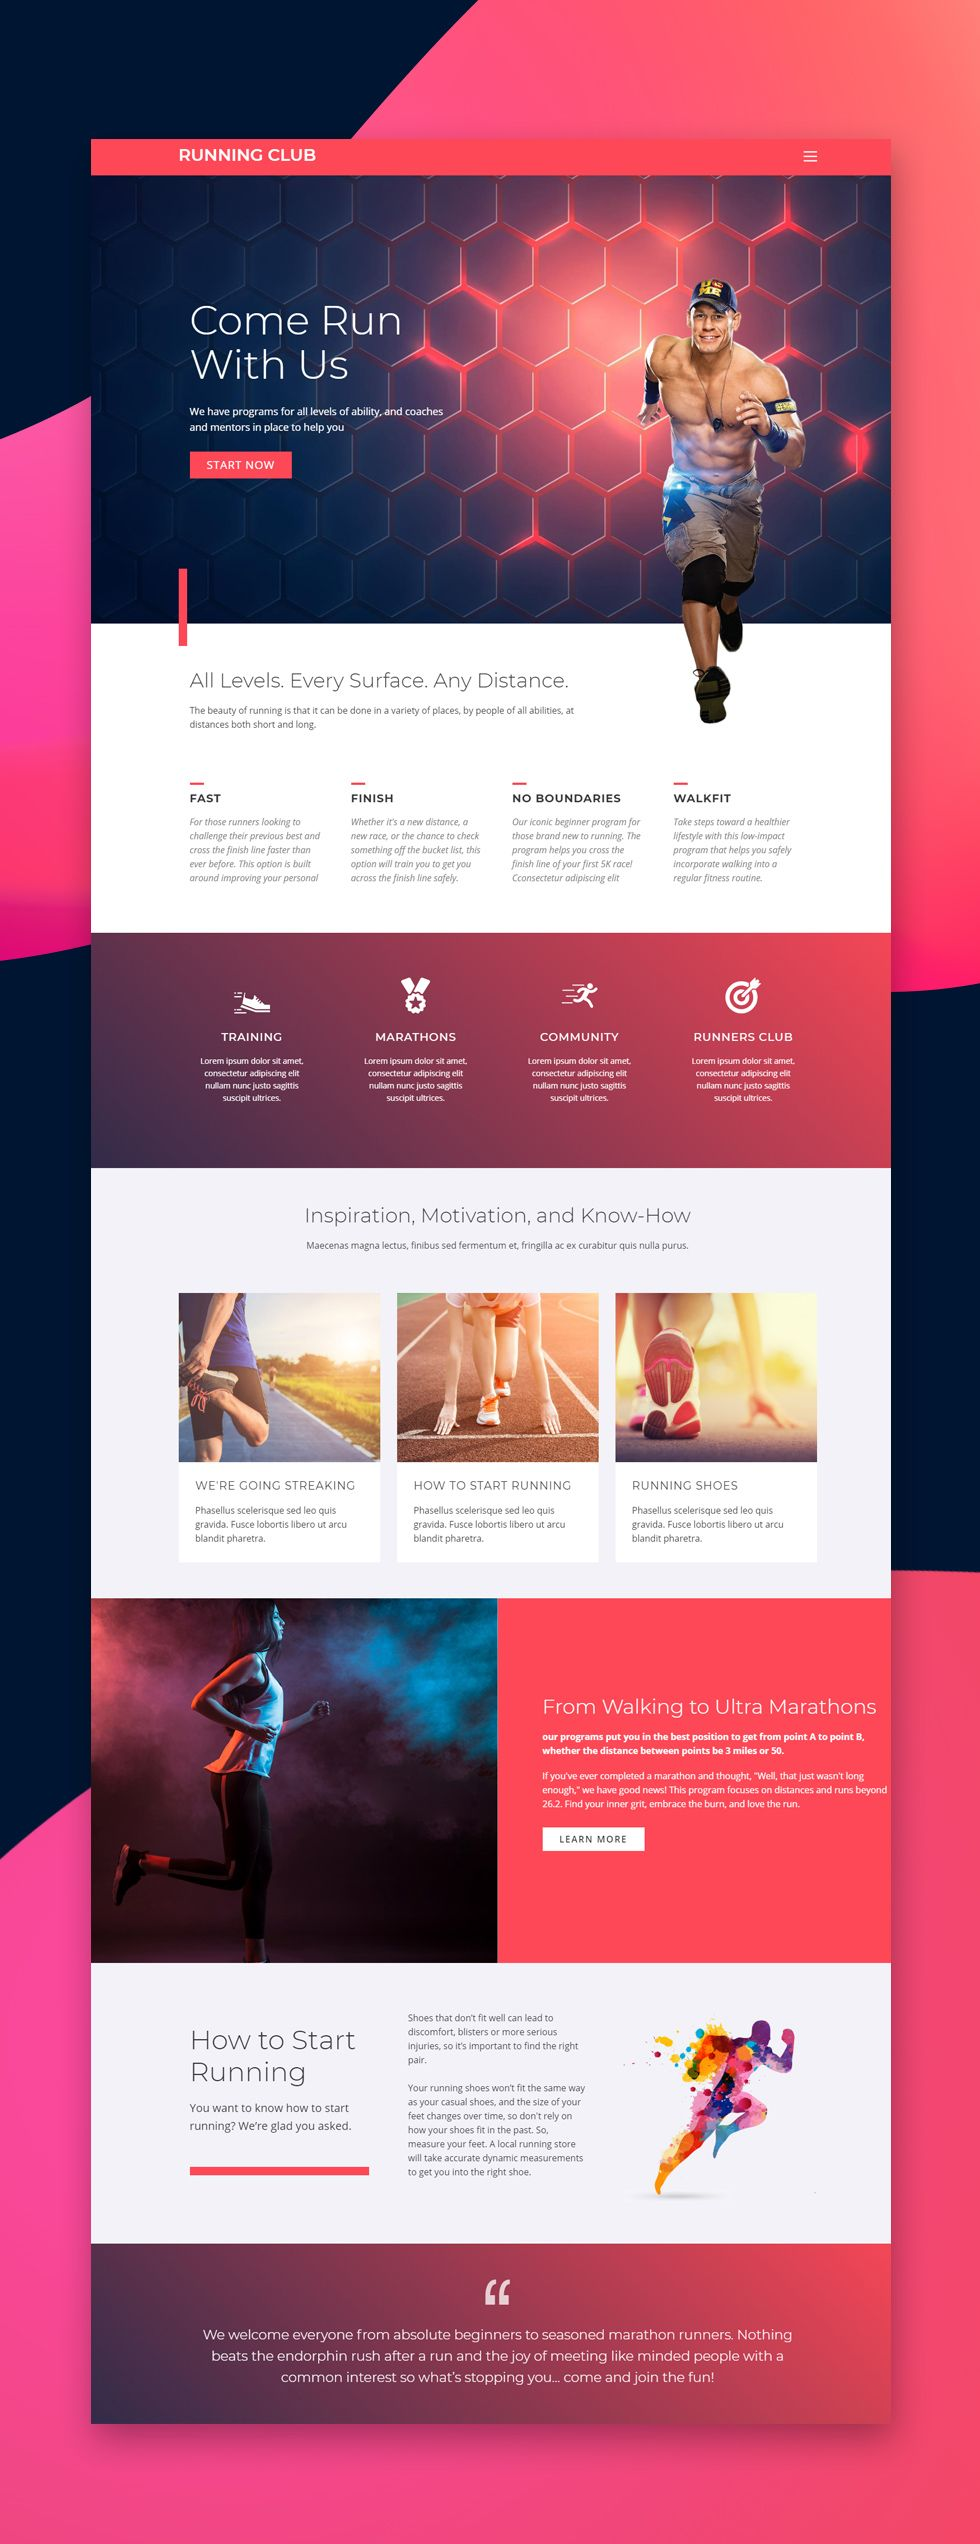 Nicepage Free Template Nicepage Is A Free Mobile Friendly Website Builder Choose From 1000 Tren Responsive Web Design Web Design Tips Portfolio Web Design